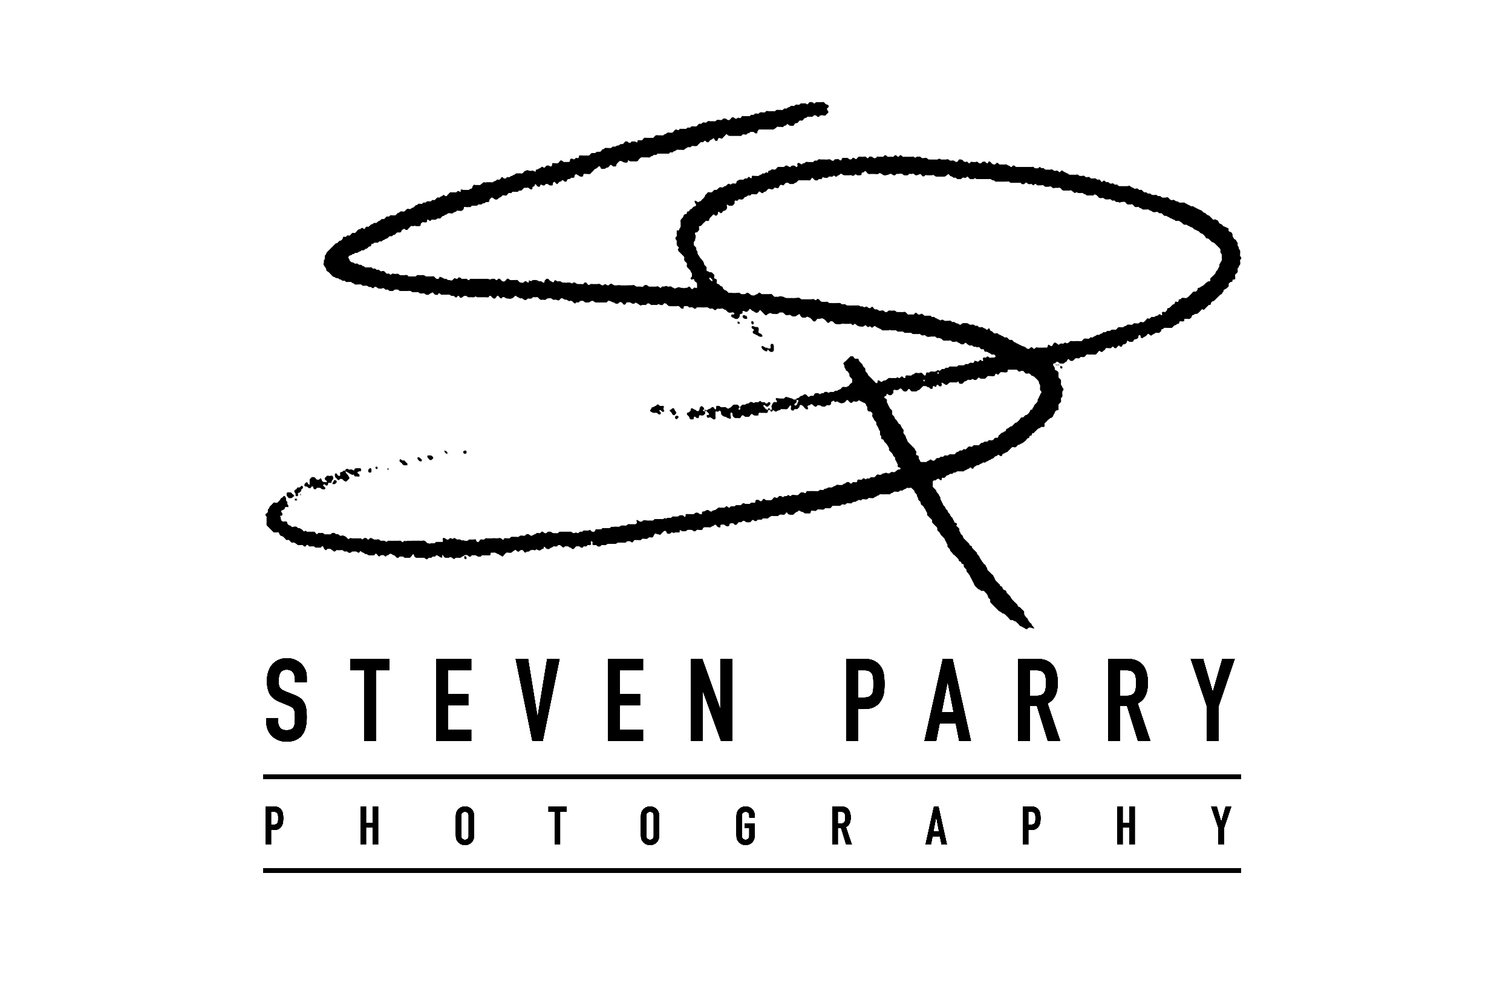 Steven Parry Photography